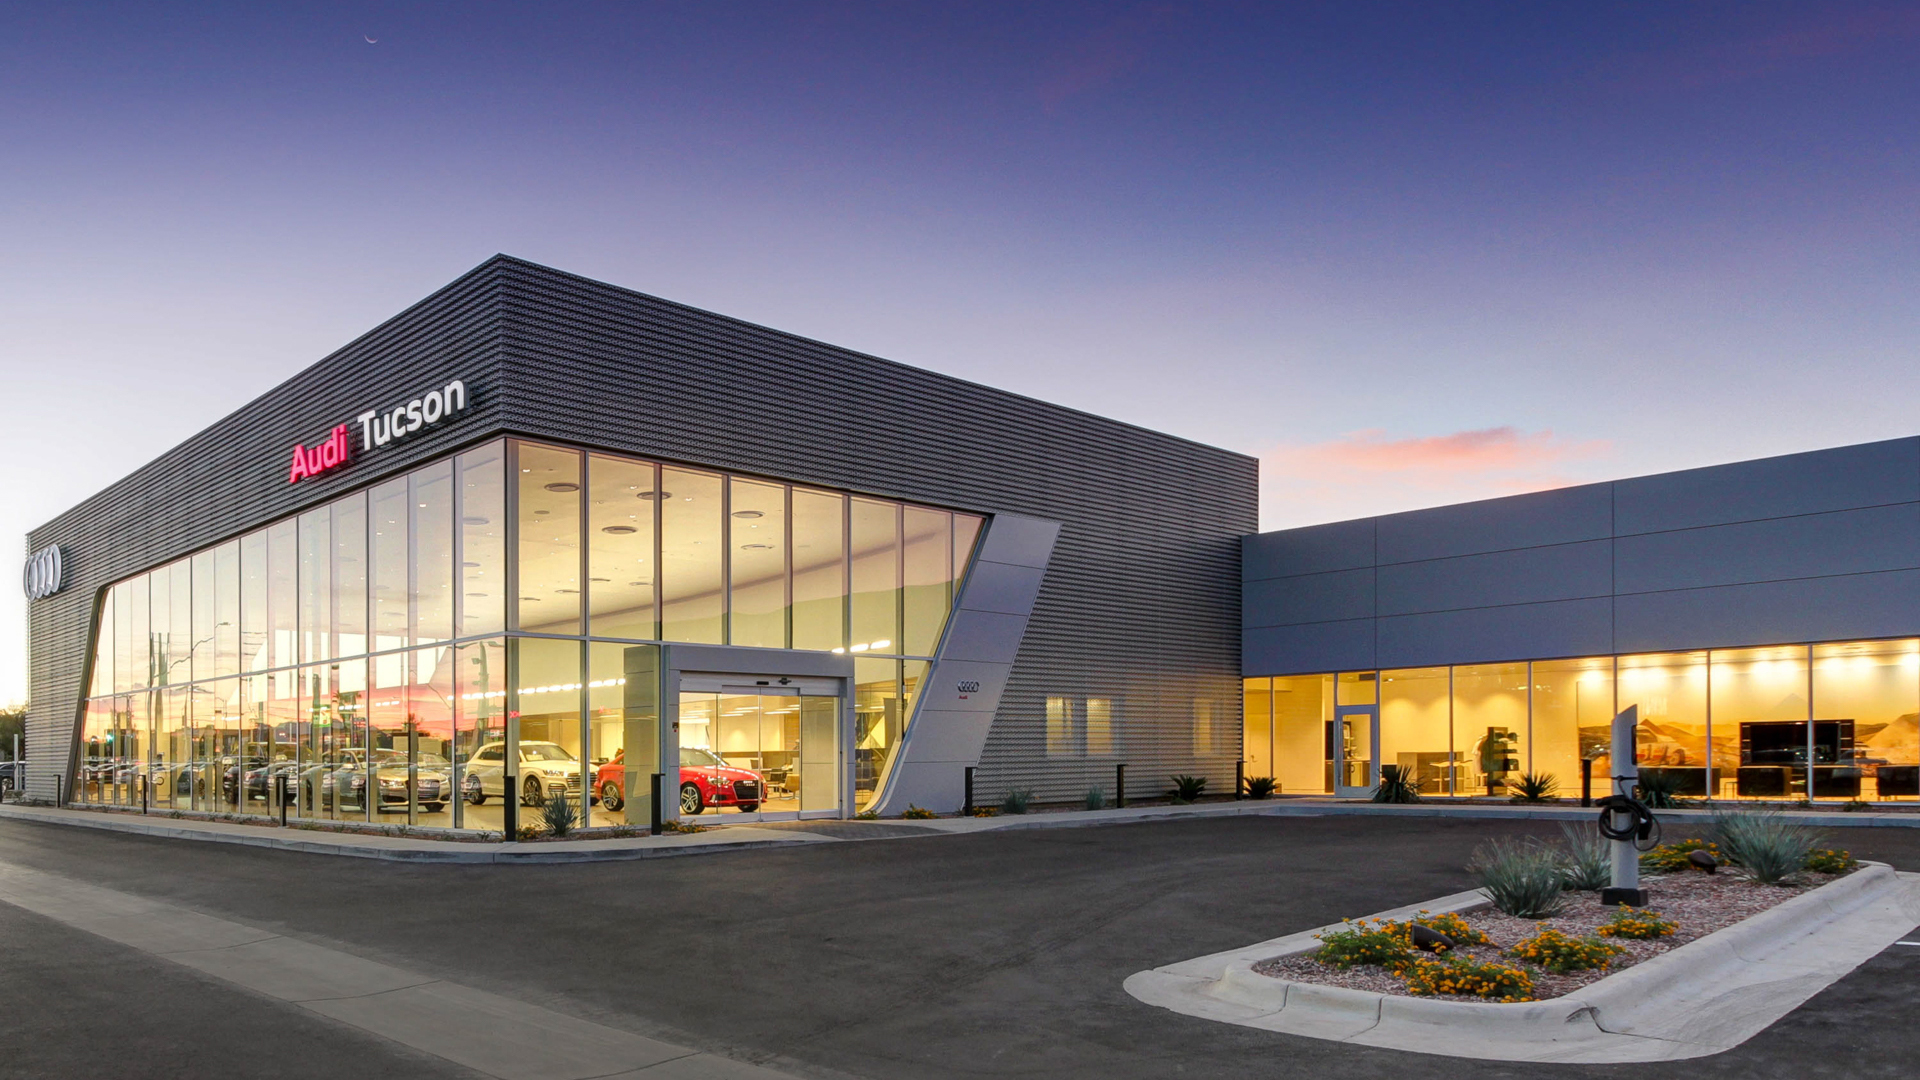 COMMERCIAL REAL ESTATE PHOTOGRAPHY – AUDI TUCSON